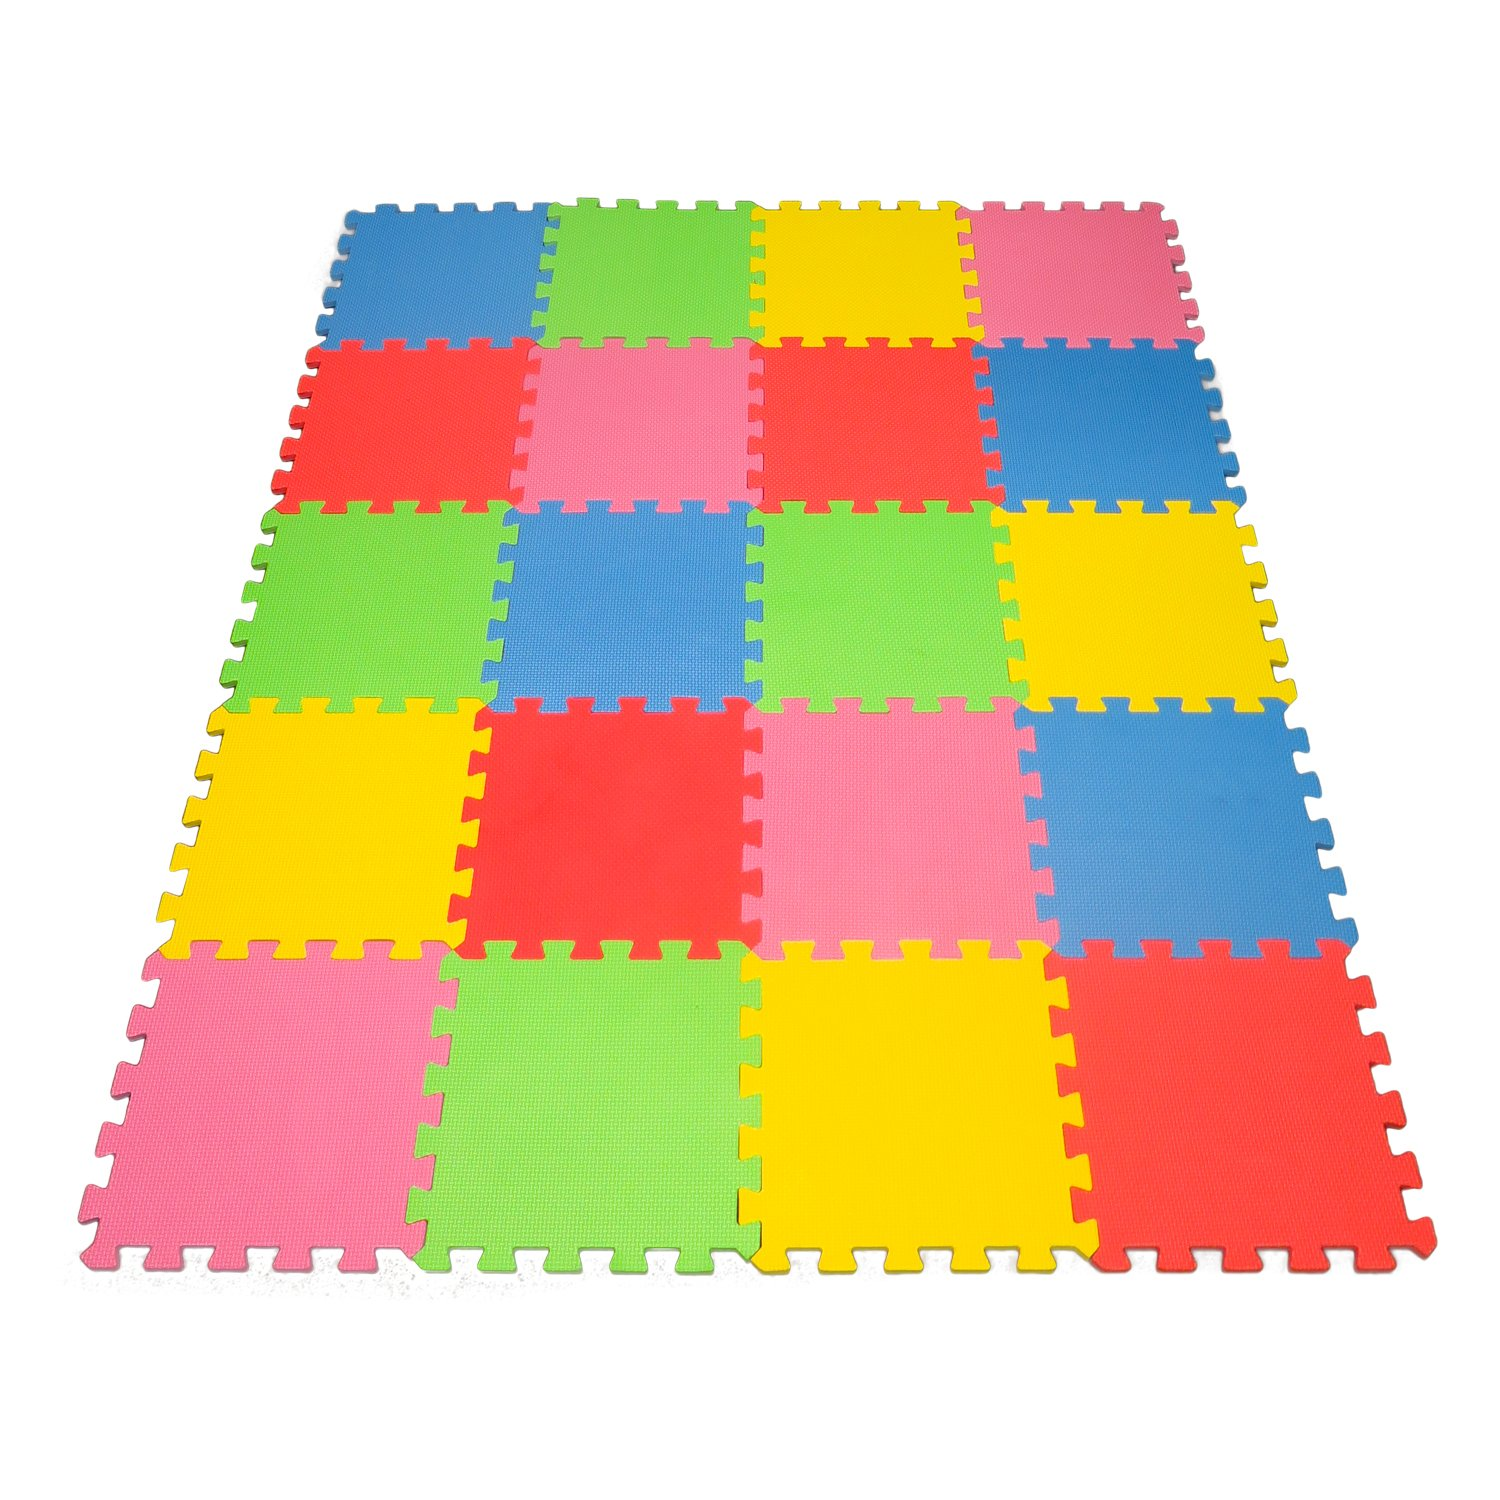 Angels 20 Xlarge Foam Mats Toy Ideal Gift Colorful Tiles